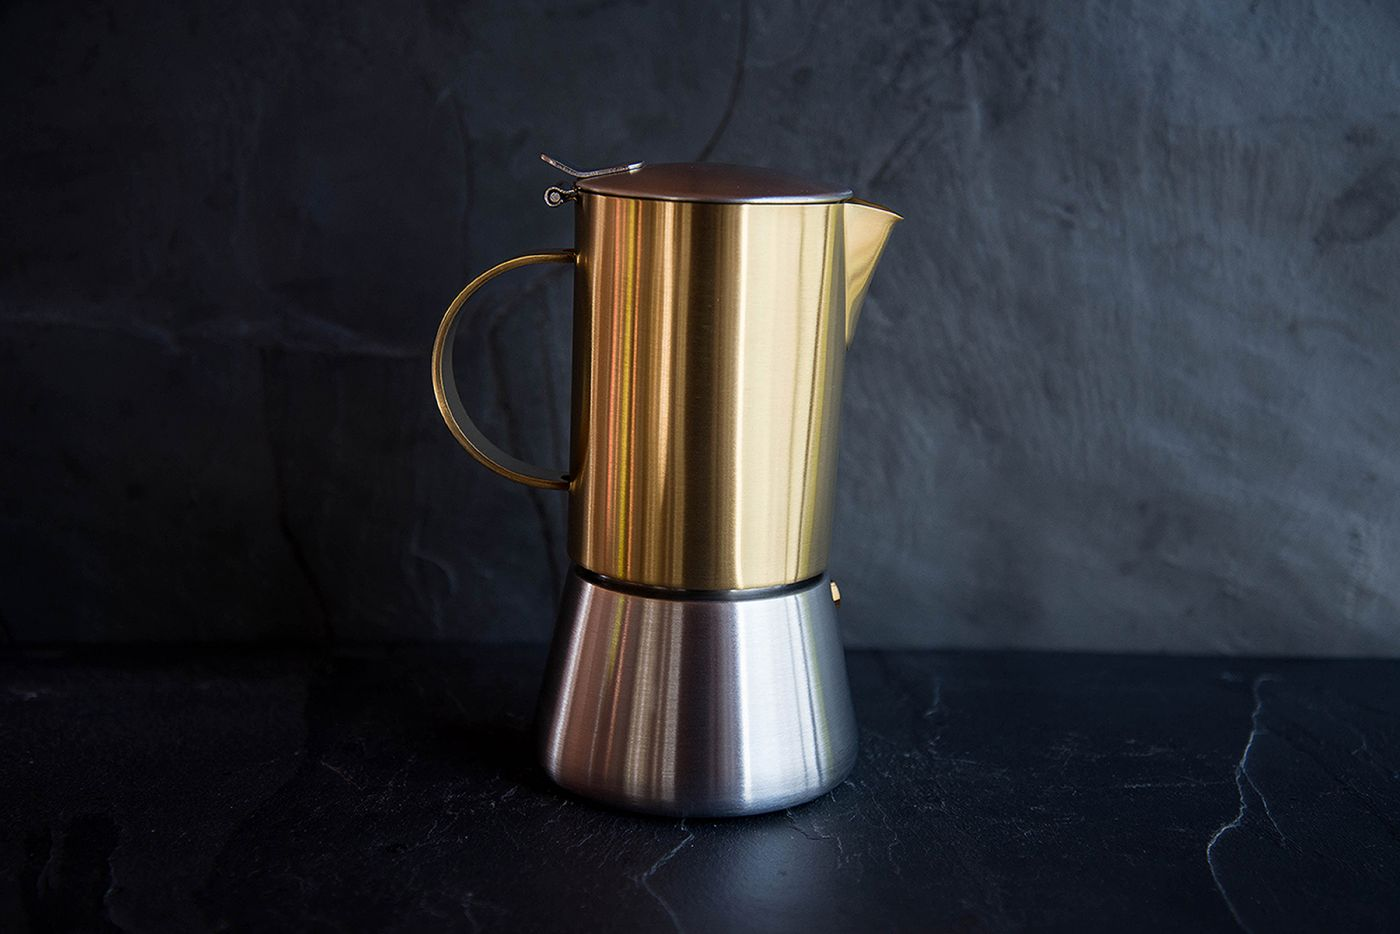 Brushed Gold Stainless Steel Stovetop Espresso Maker